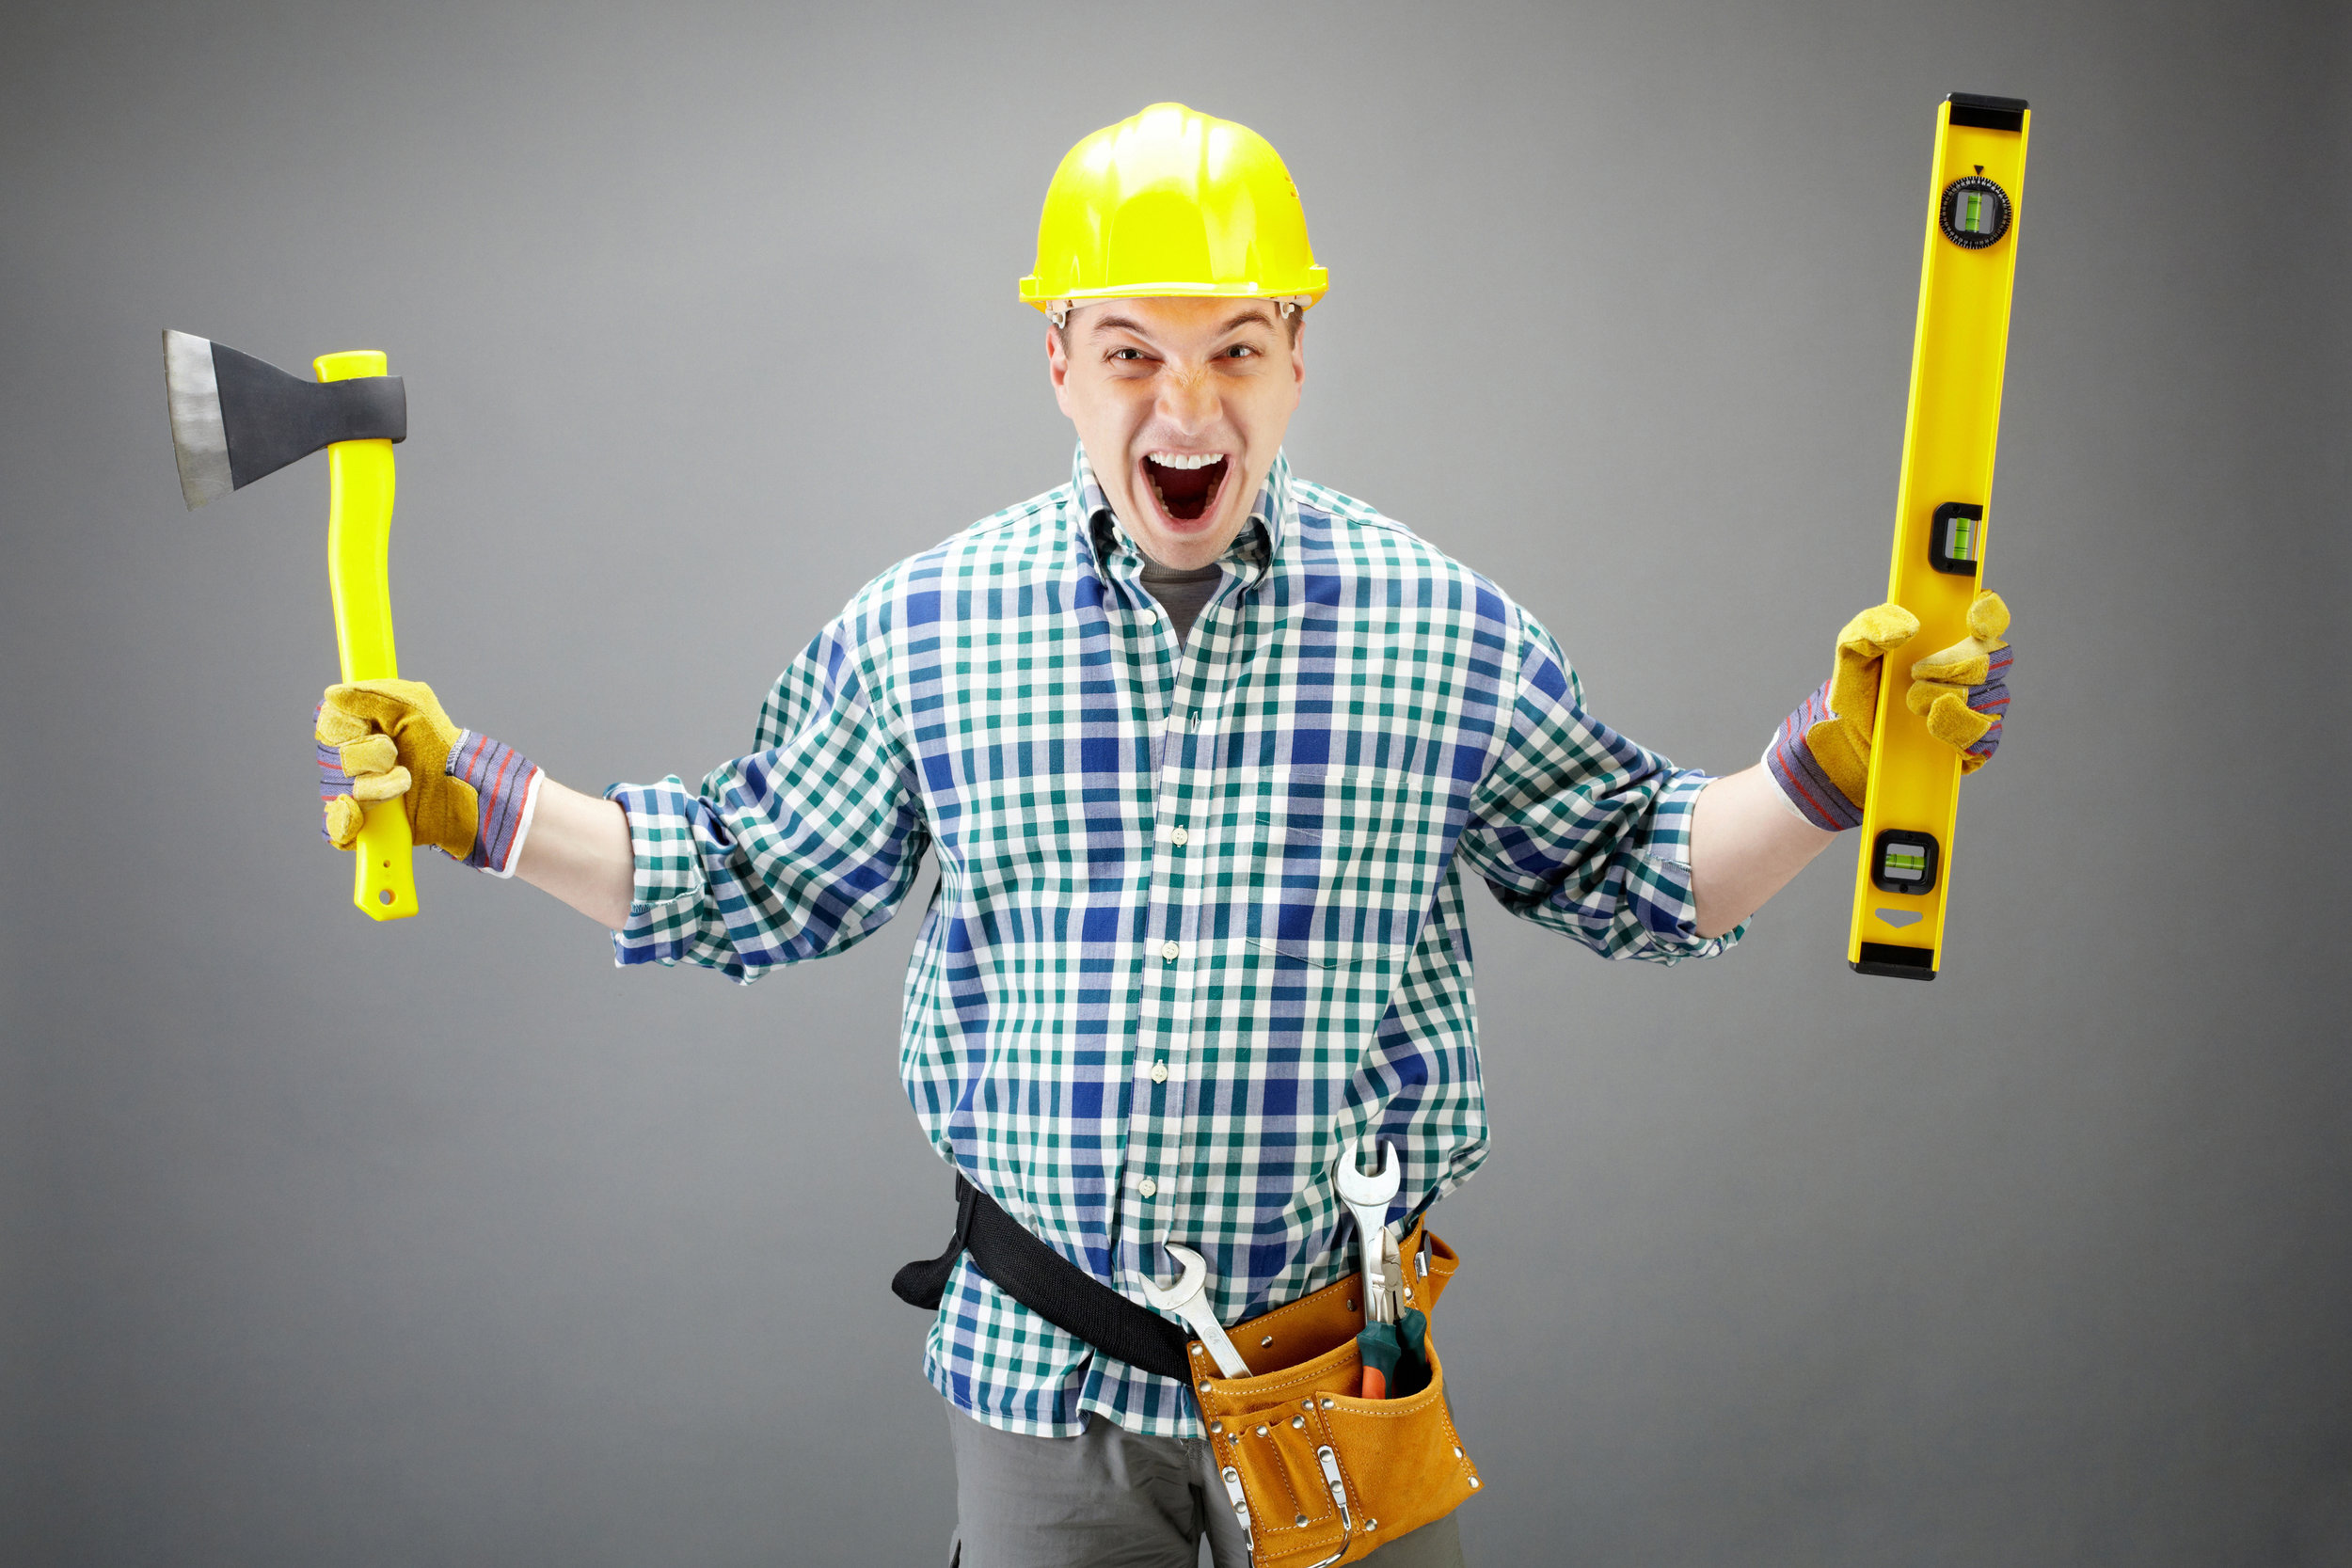 graphicstock-portrait-of-crazy-architect-worker-with-axe-and-level-measuring-device_Har58xmgVW.jpg